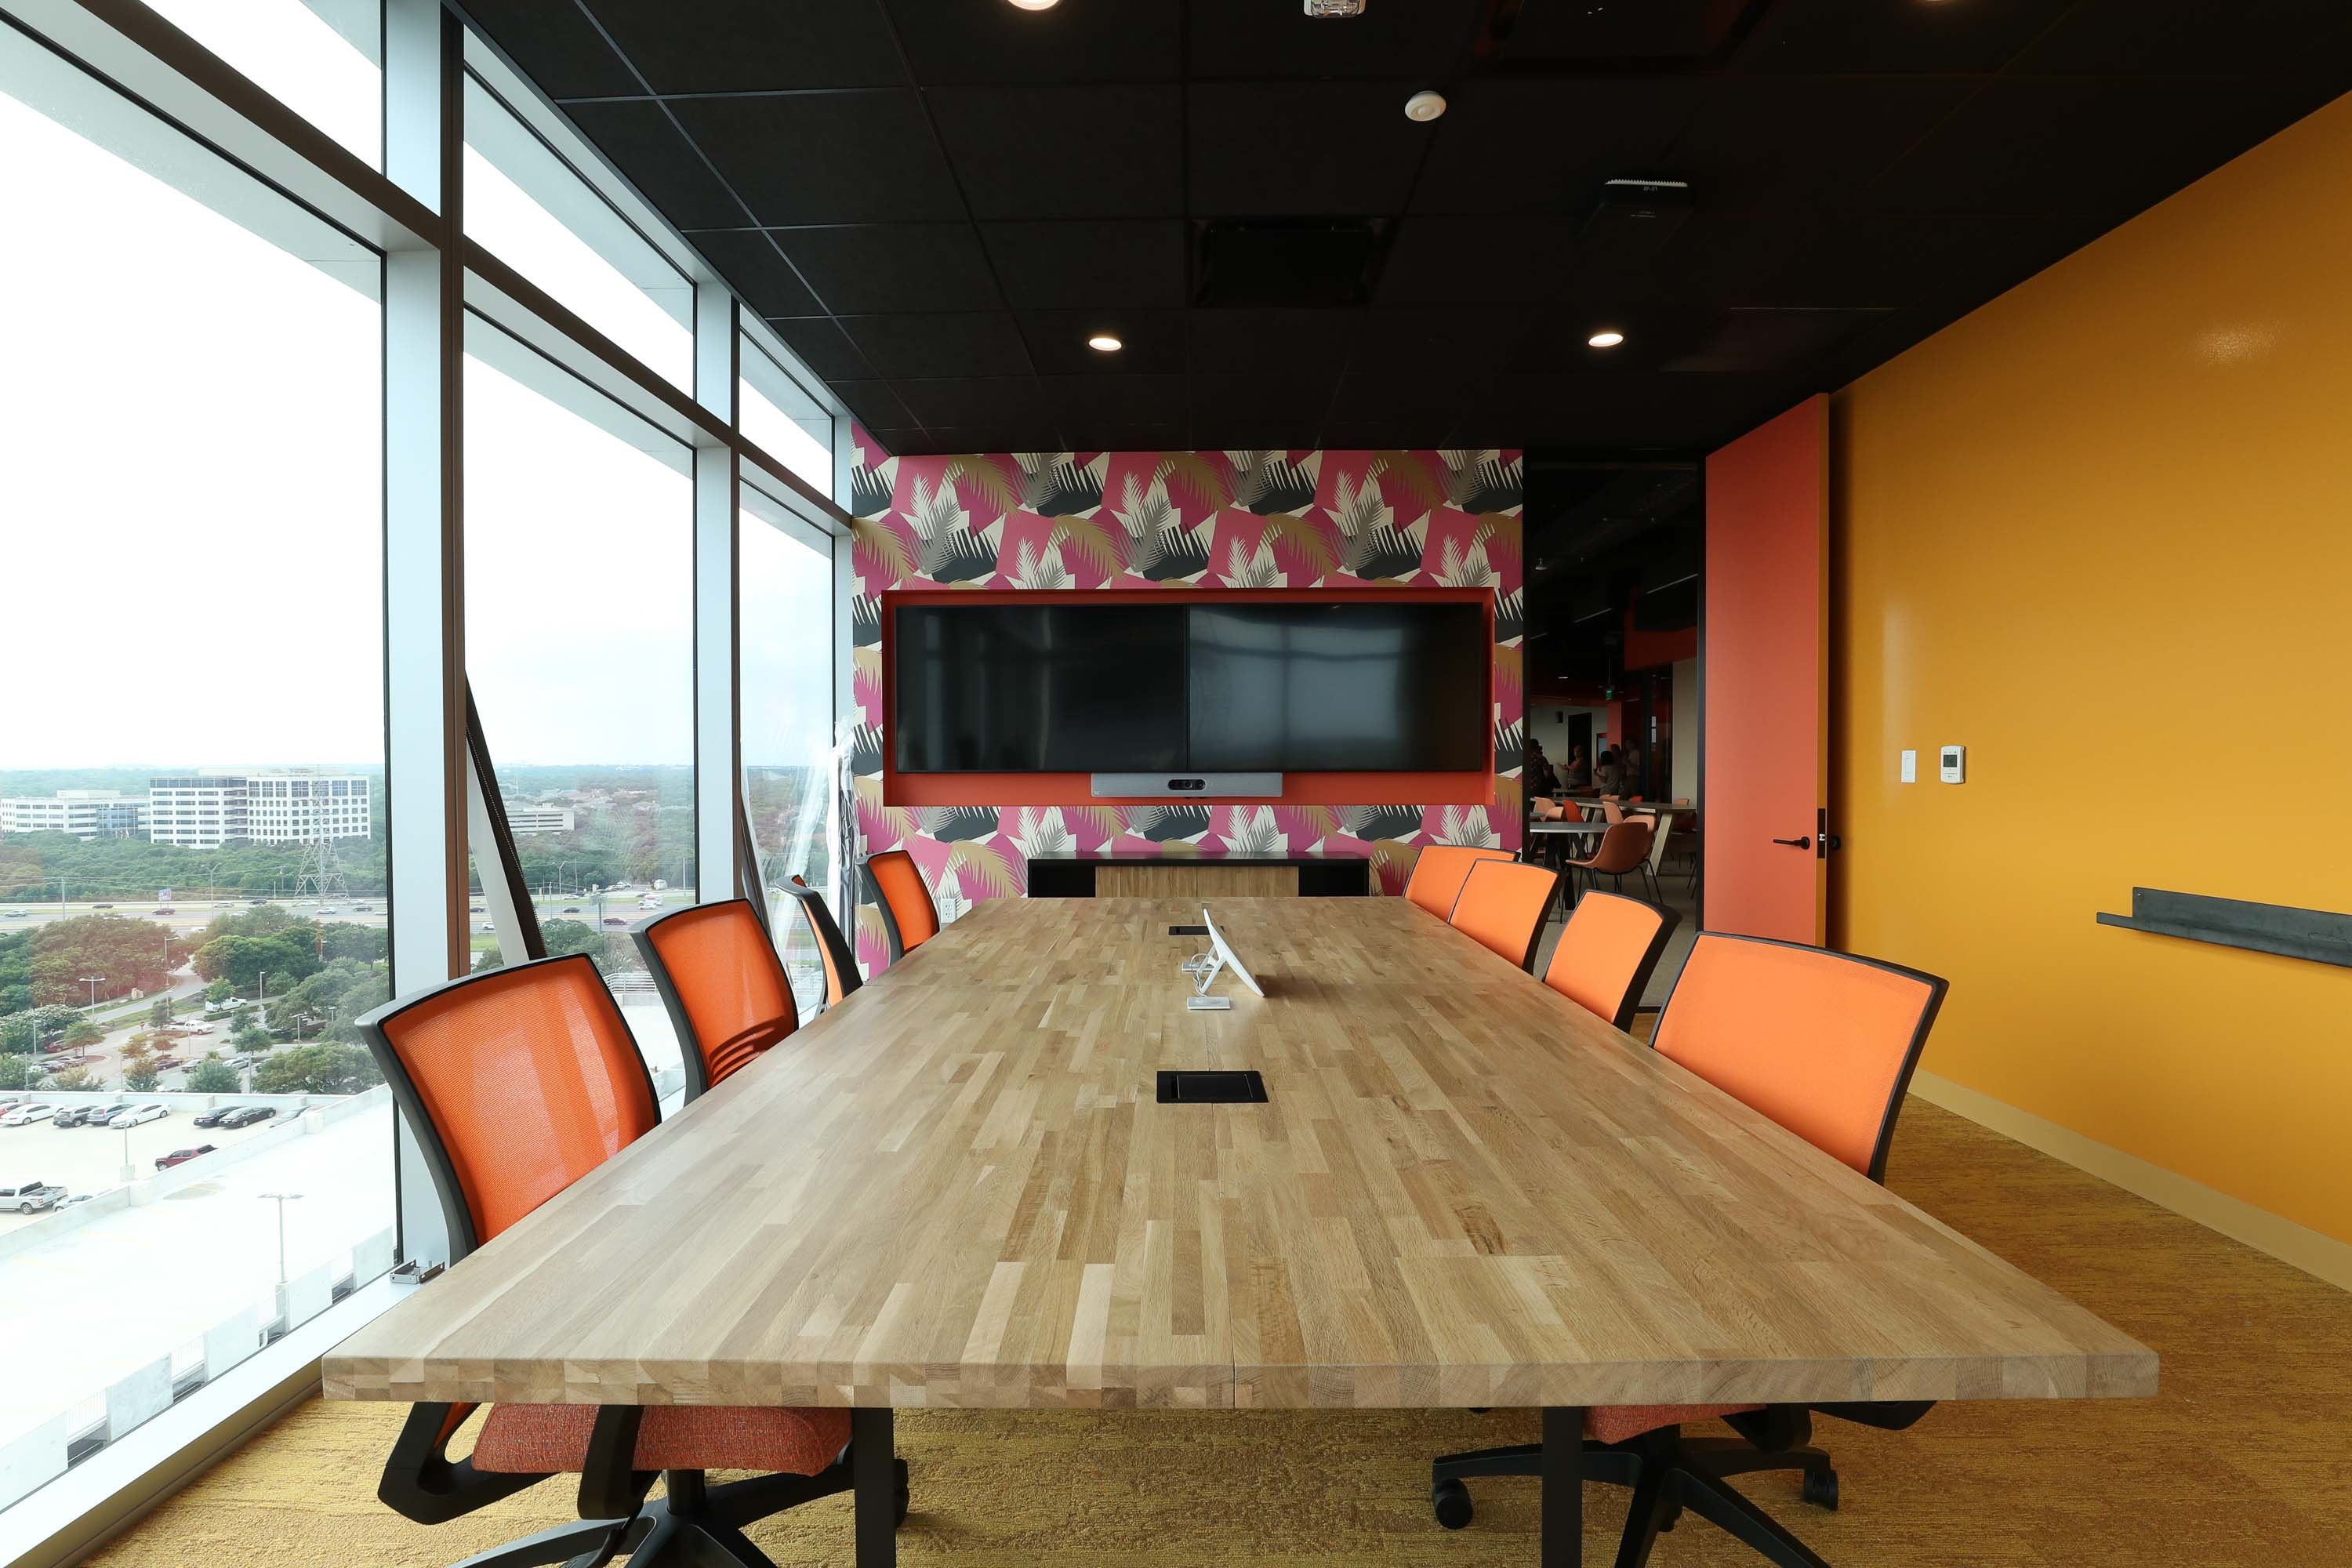 meeting room interior with big collaboration table, wall to wall windows to the left, an orange wall to the right, and a printed wallpaper in the back